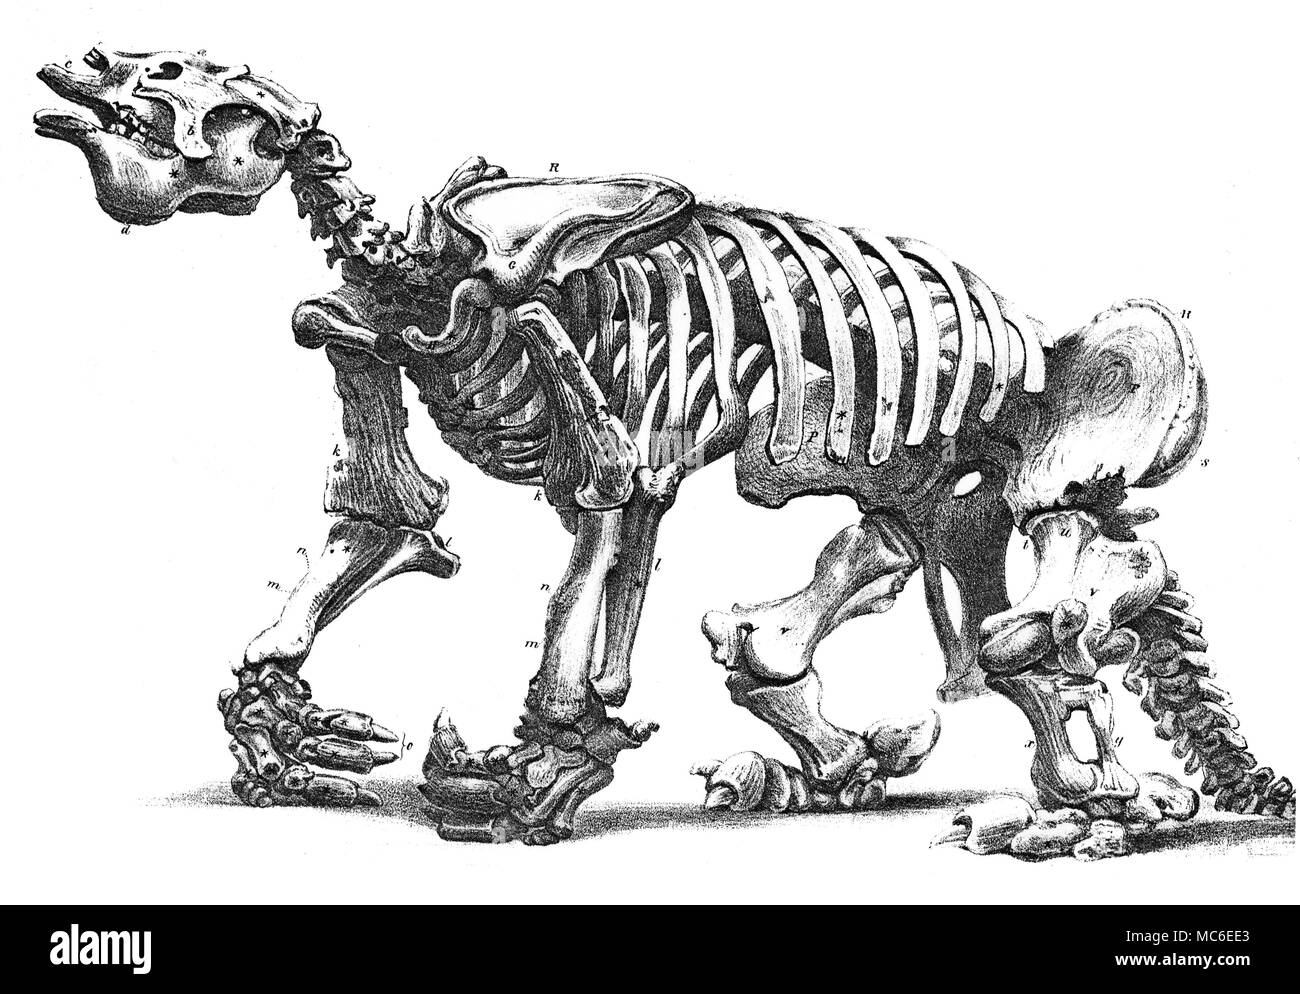 MONSTERS  Lithograph (by W.L. Walton) of the skeleton of a Megatherium, preserved in the Royal College of Surgeons, after a drawing by Waterhouse Hawkins. Fold-out plate, from Francis T. Buckland, Geology and Mineralogy, 1858. - Stock Image